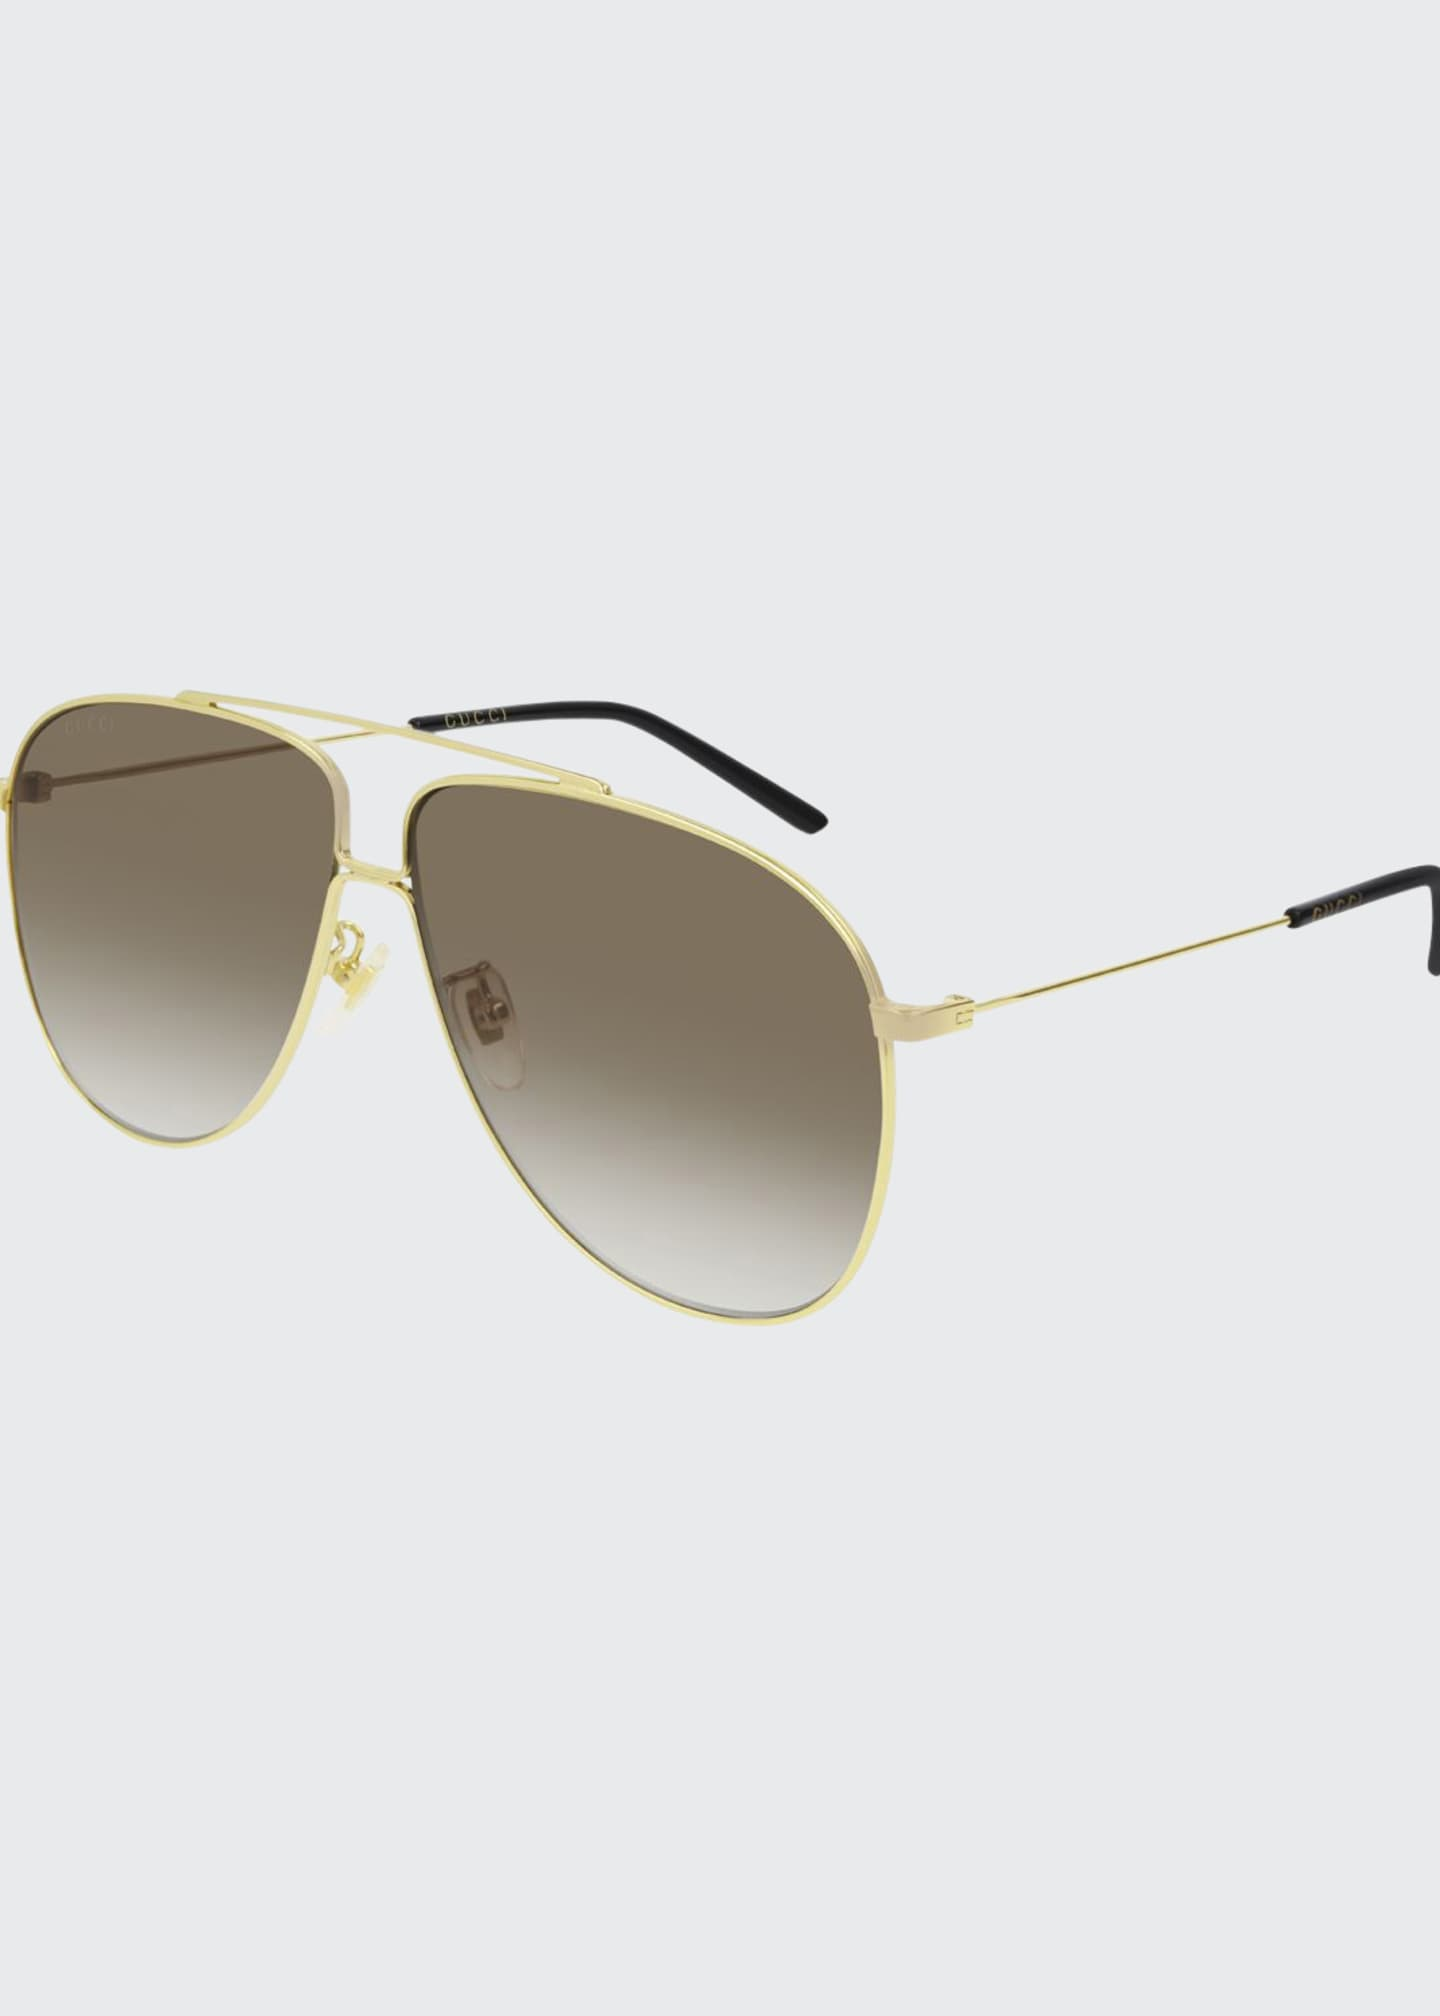 Gucci Men's Gradient Aviator Sunglasses